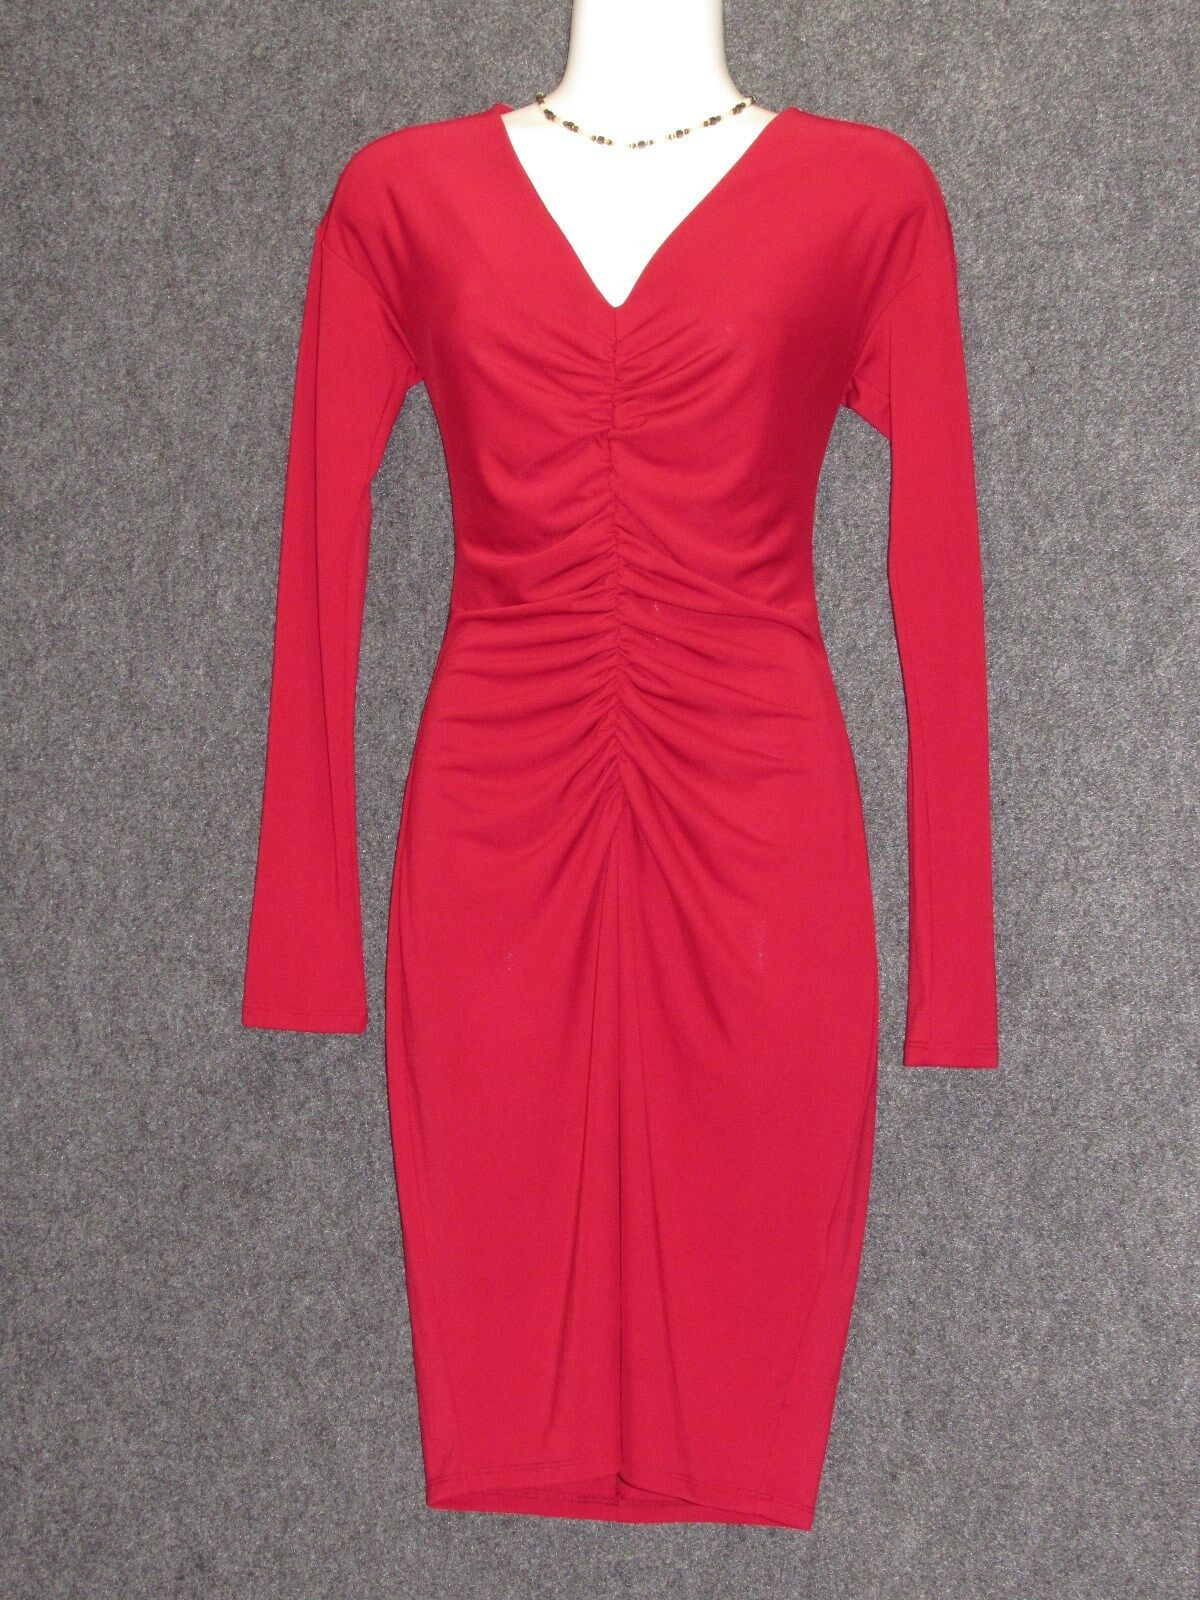 NARCISO RODRIGUEZ for Design Burgundy Ruched Stretch Jersey Sheath Dress SZ XS